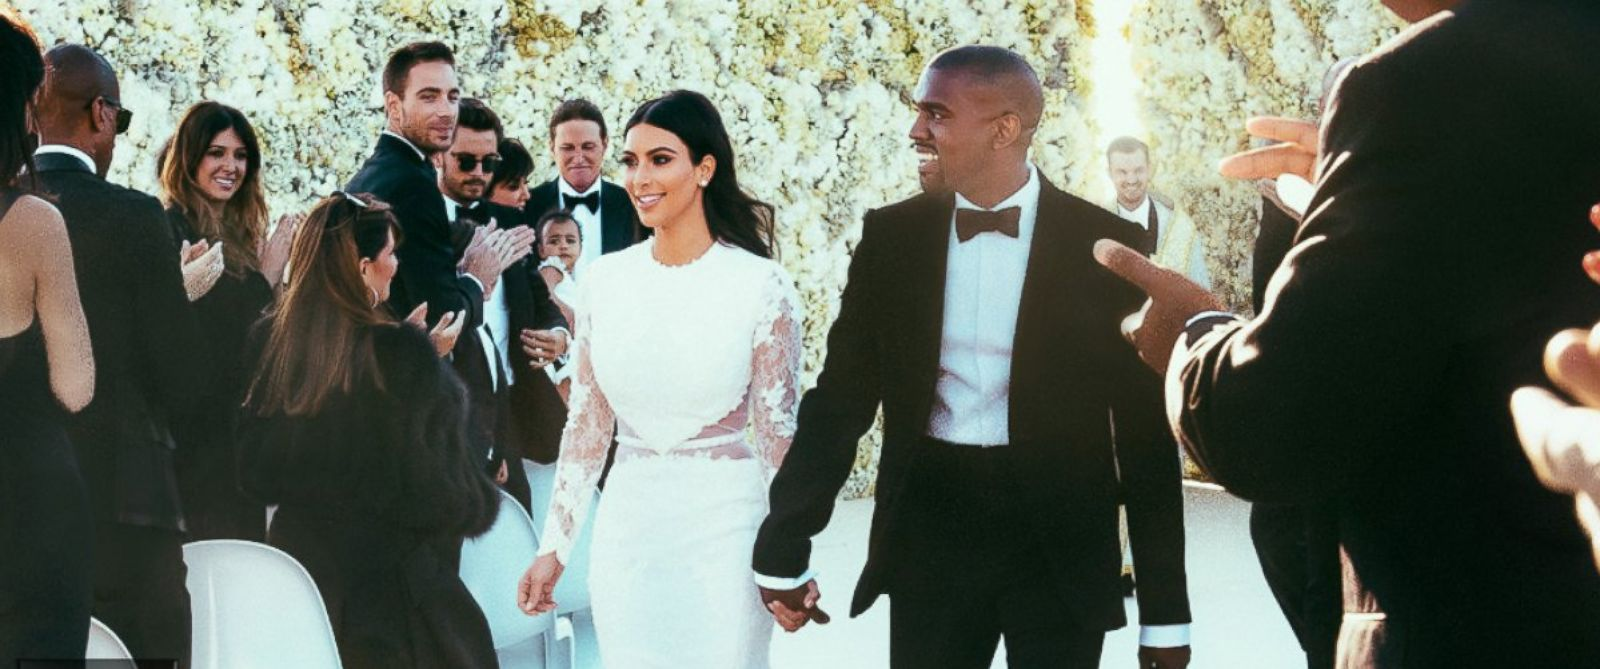 """PHOTO: Newlyweds Kanye West and Kim Kardashian walk down the aisle as friends and family look on at the Forte di Belvedere in Florence, Italy, May 24, 2014. <a href=""""http://www.eonline.com/news/545405/kim-kardashian-and-kanye-west-s-first-photos-as-a-marr"""